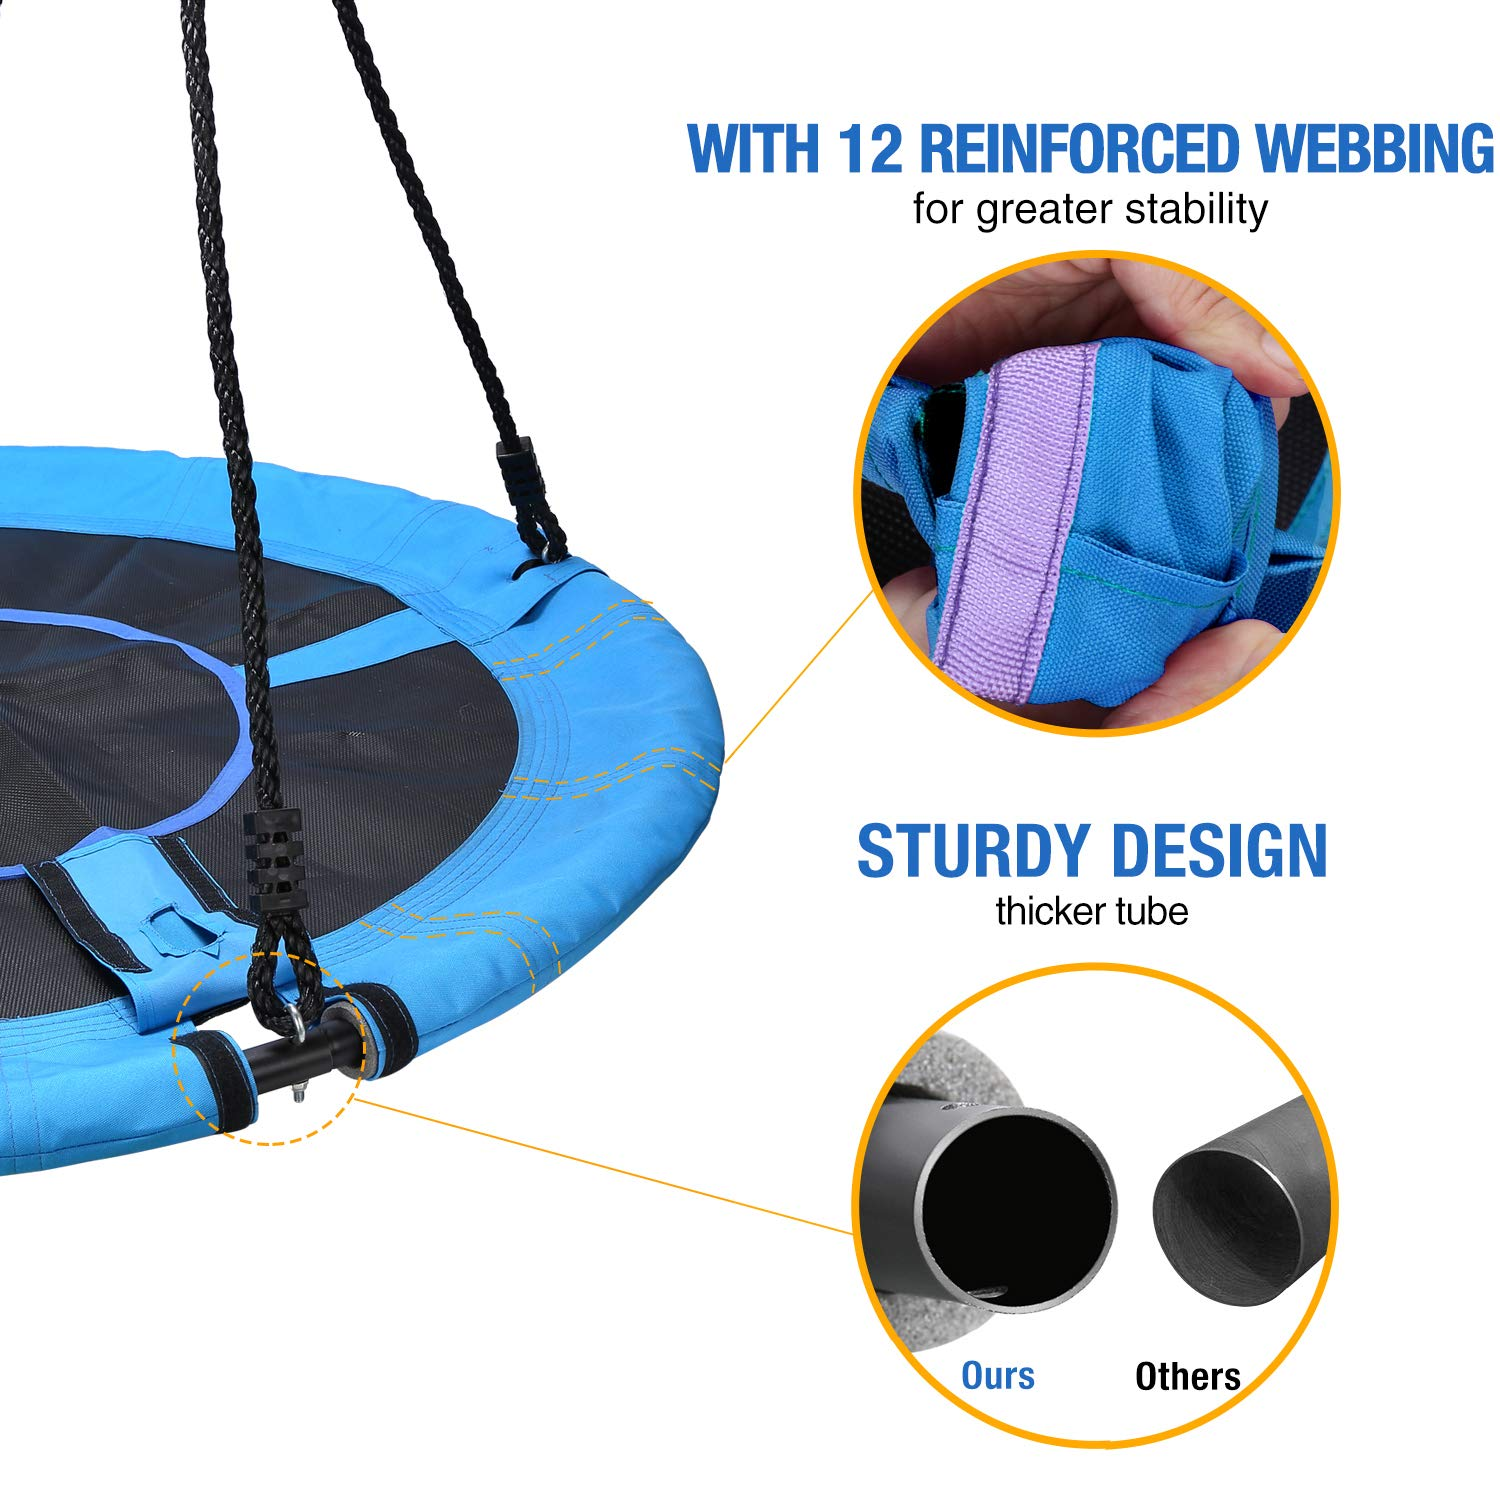 Trekassy 700lb Saucer Tree Swing for Kids Adults 40 Inch 900D Oxford Waterproof Frame with 2 Hanging Straps by Trekassy (Image #3)